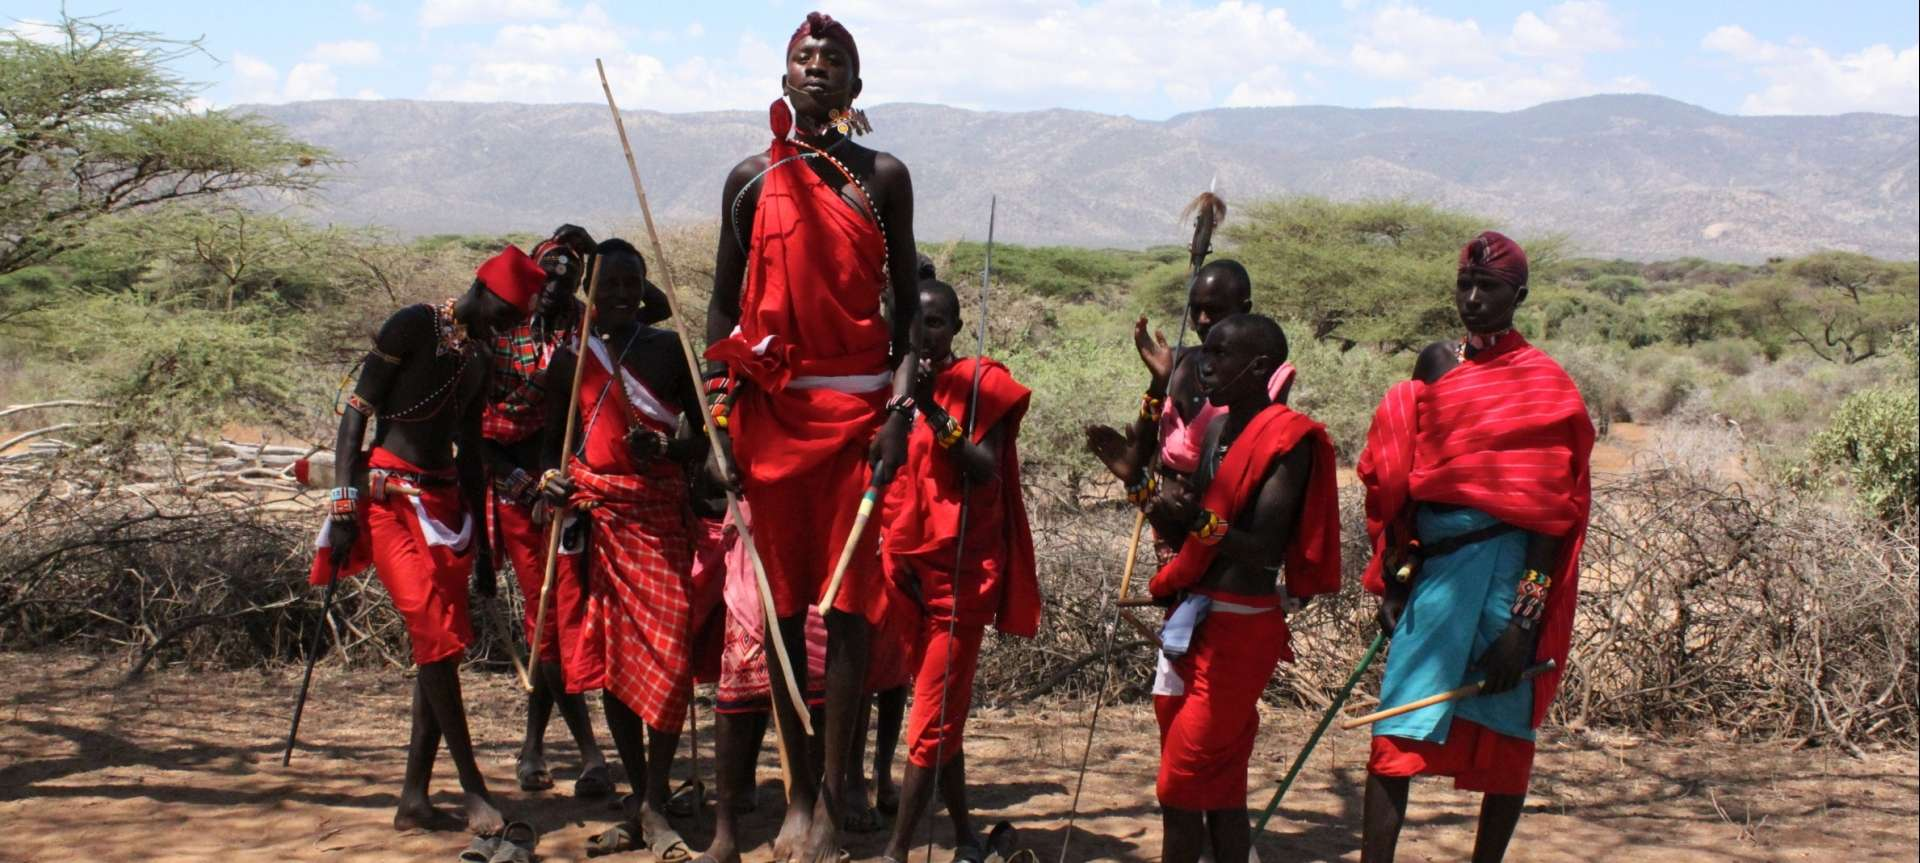 The Maasai people of Kenya